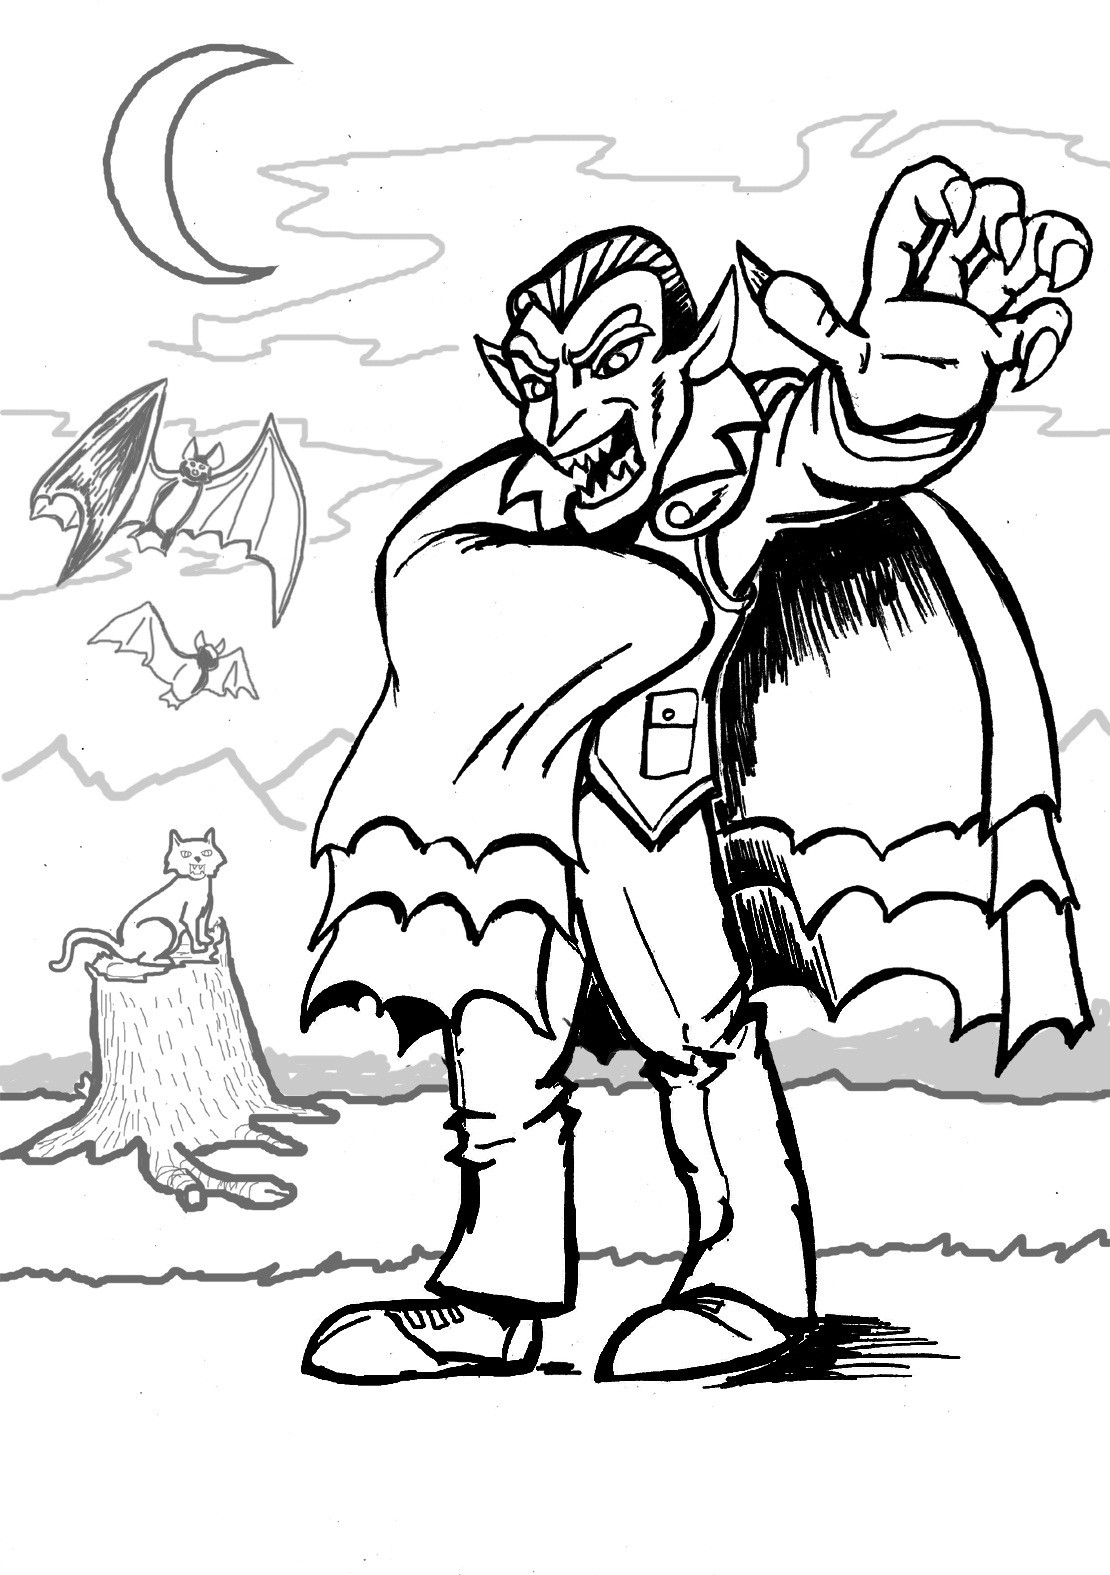 Printable Coloring Pages Kids  Free Printable Vampire Coloring Pages For Kids